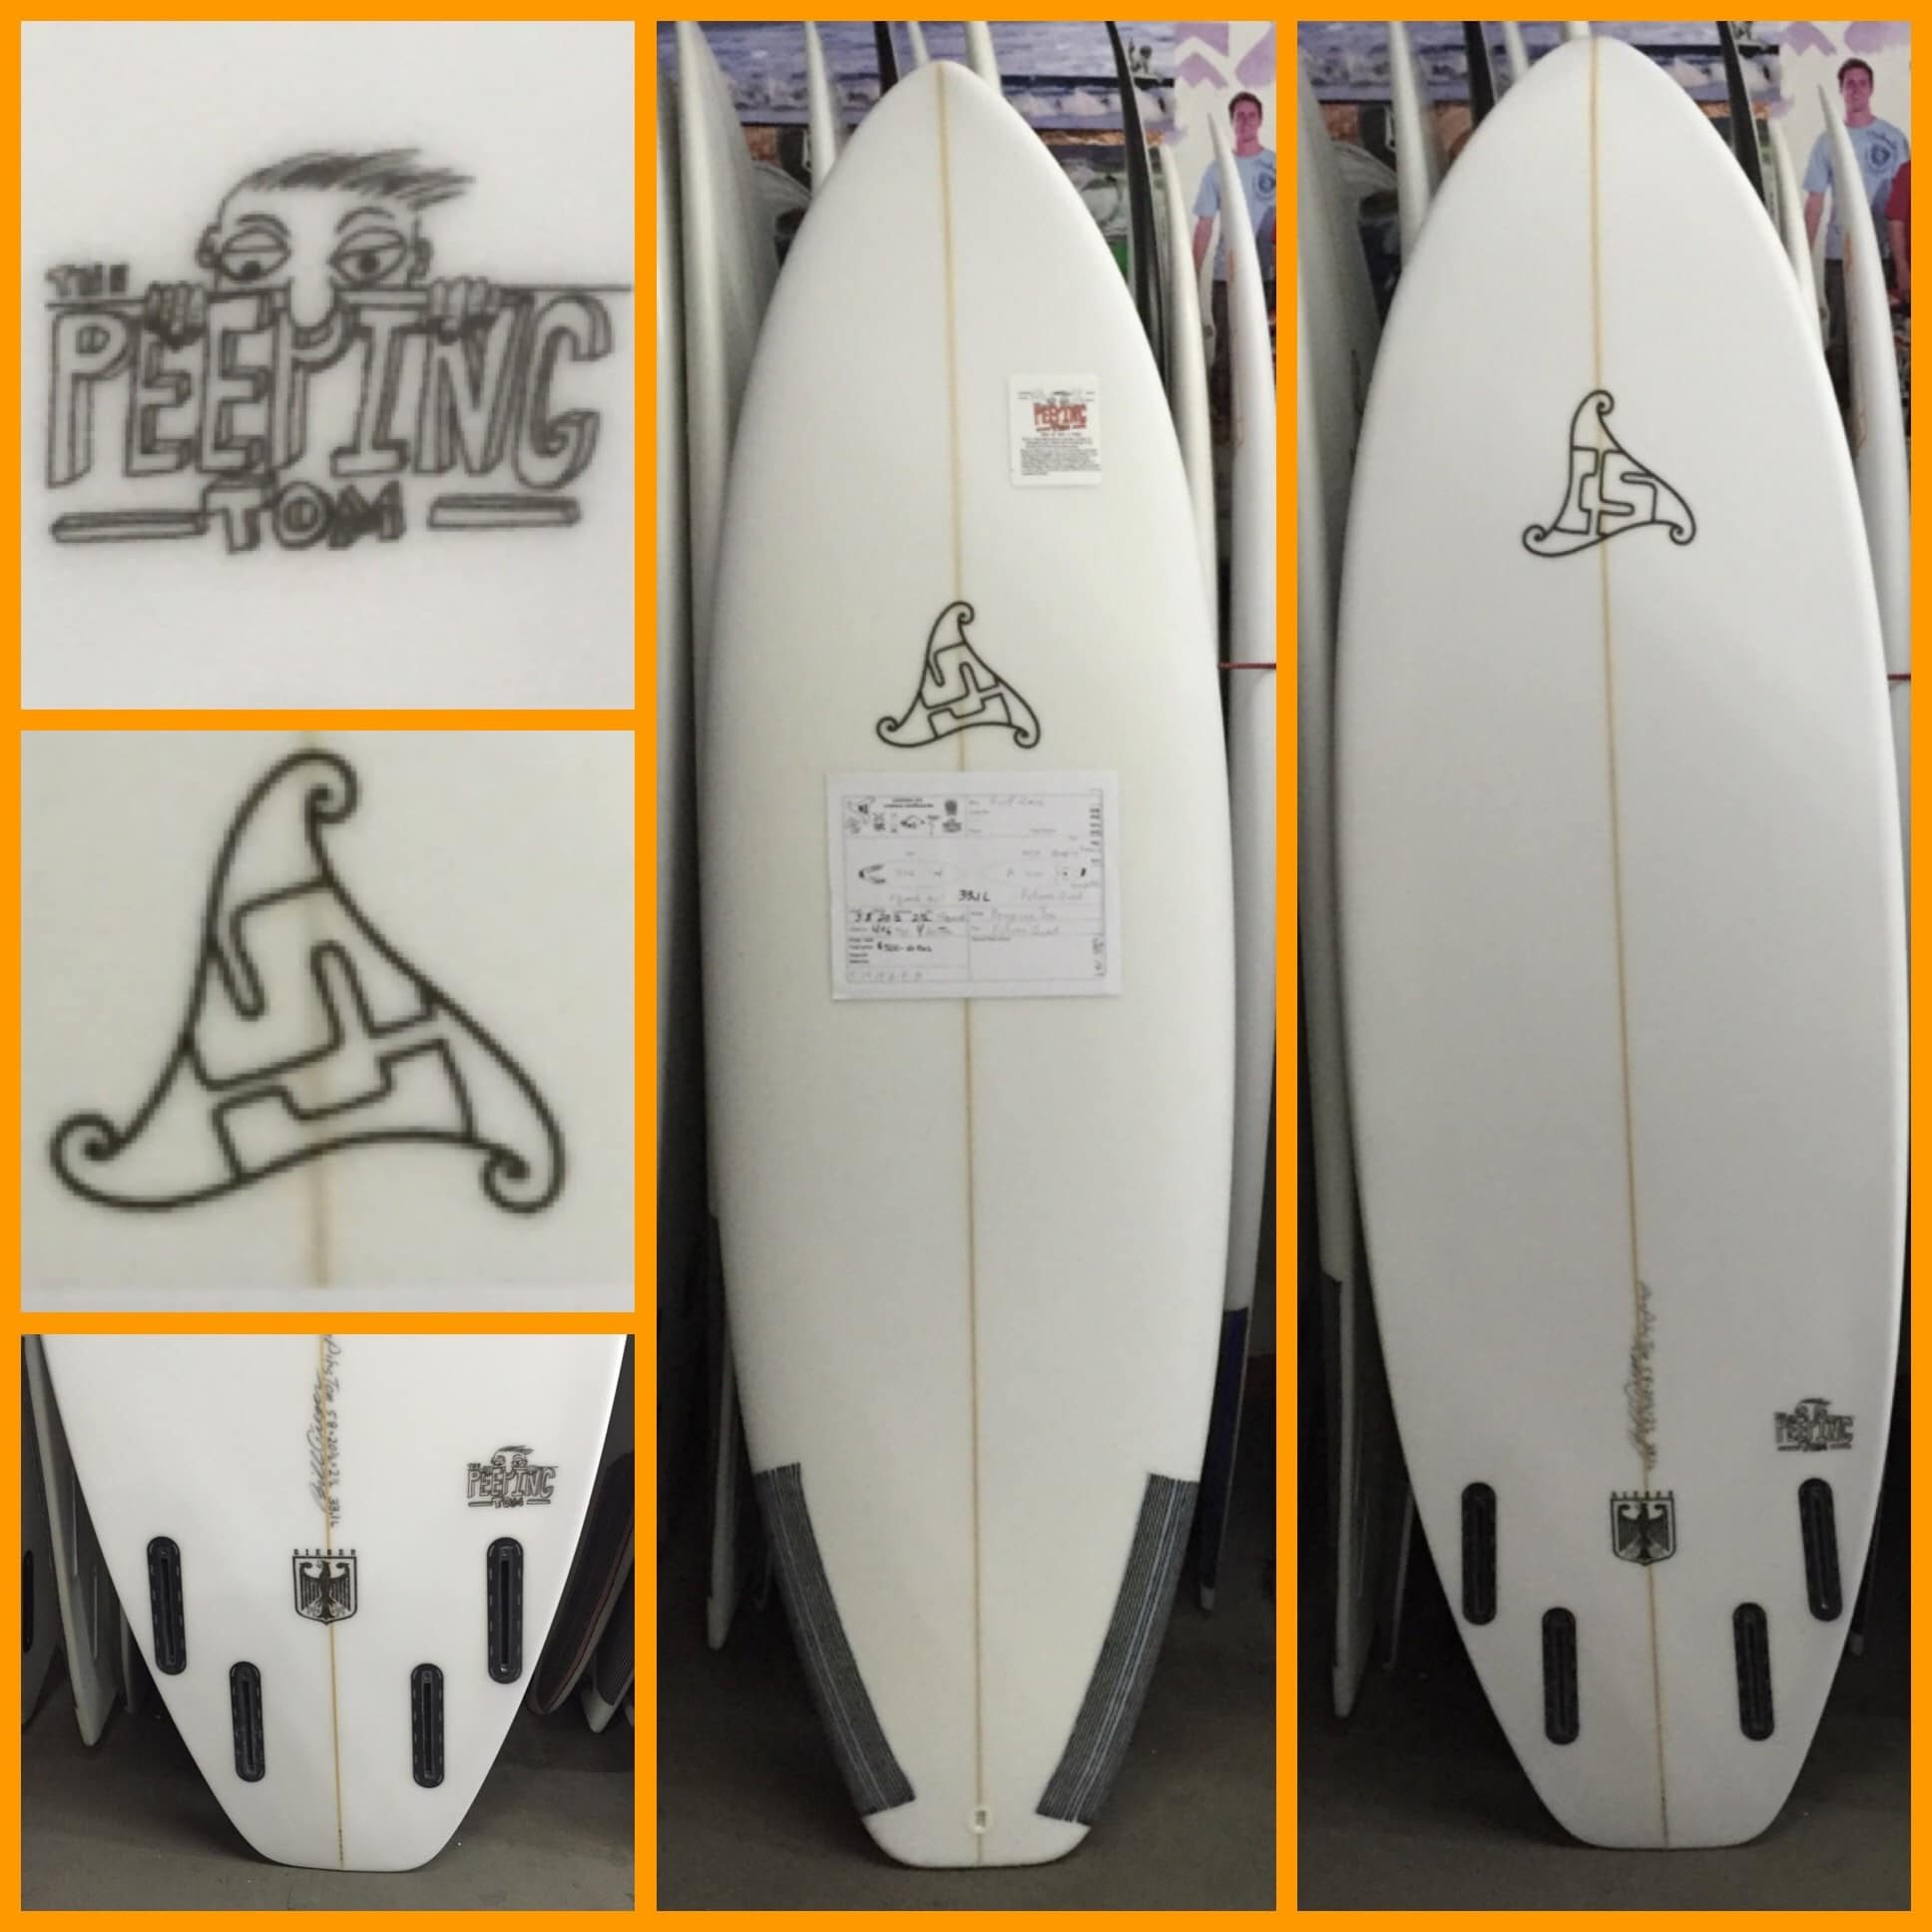 "Summer Jet Peeping Tom (5'8"" x 20 1/2"" x 2 1/2"" 33.1L) squash tail Futures Quad"